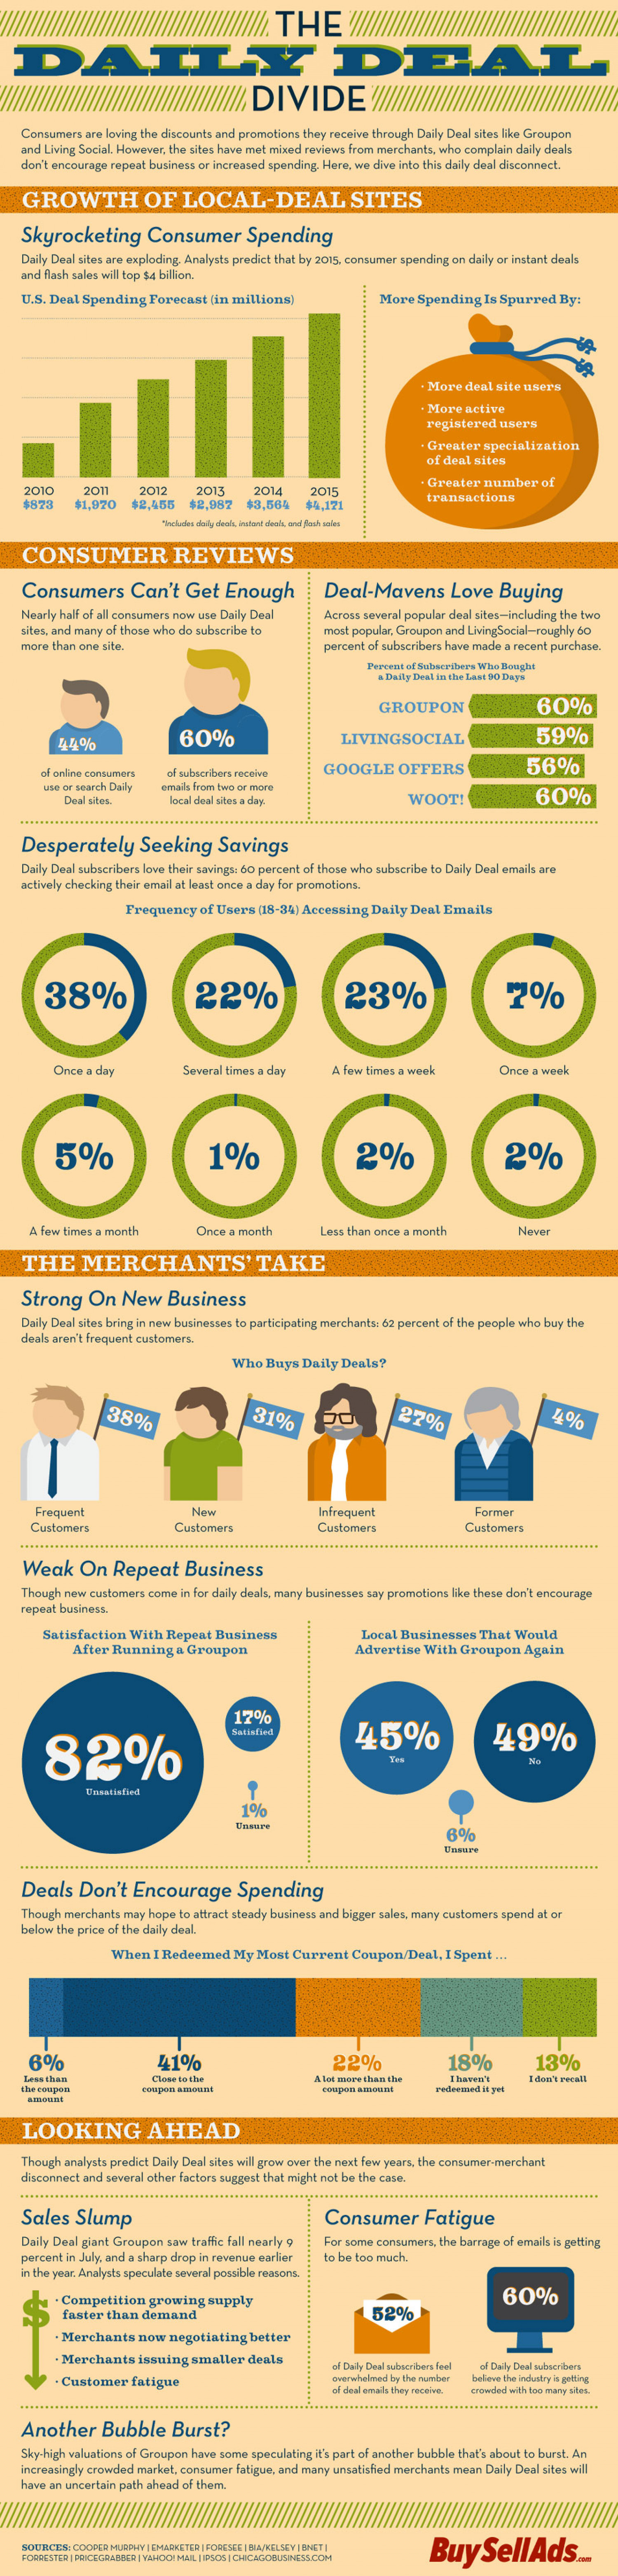 The Daily Deal Divide Infographic